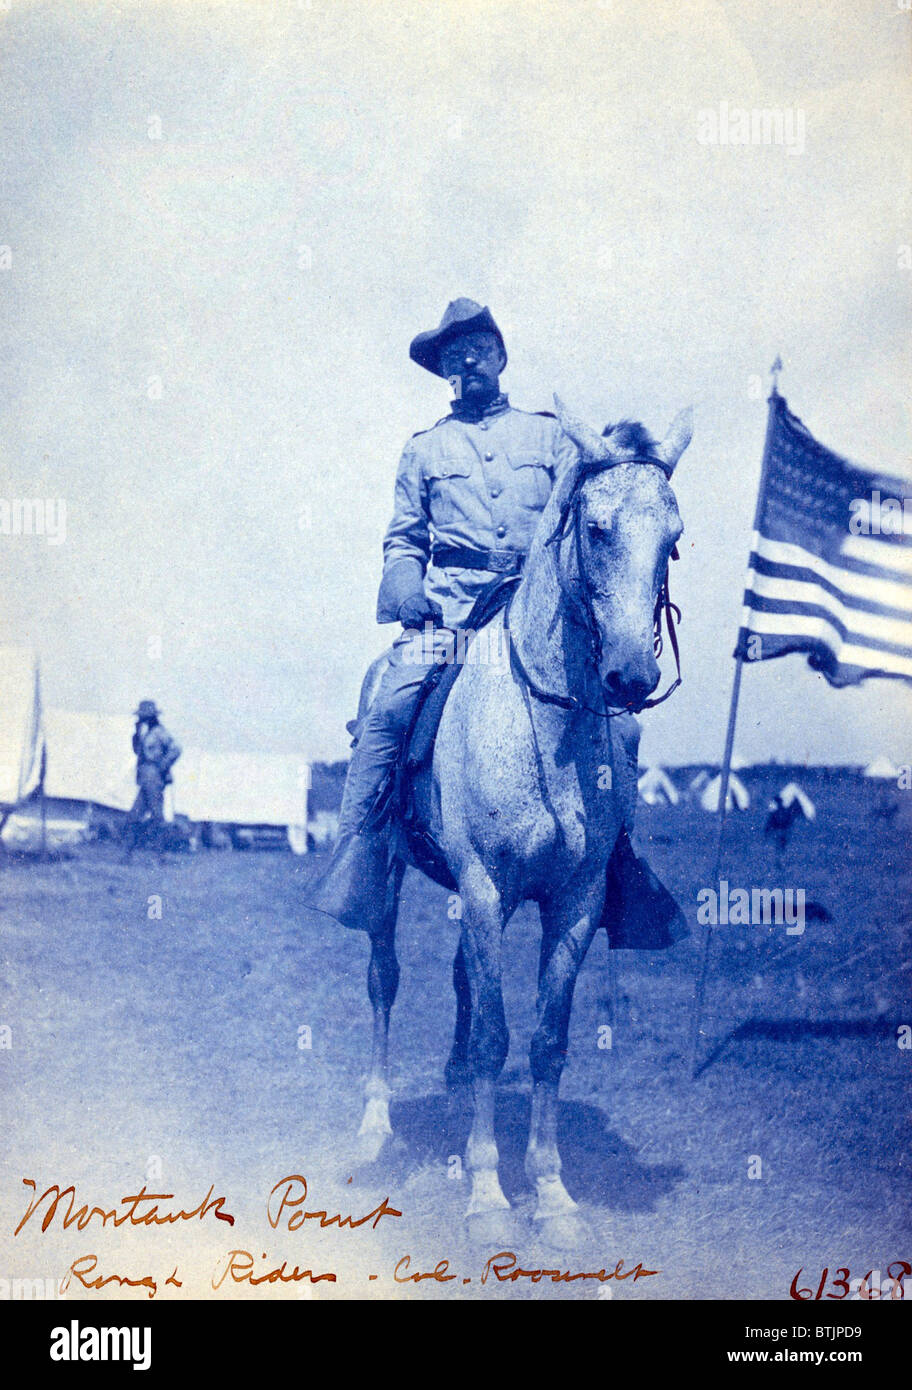 Colonel Theodore Roosevelt on horseback. Roosevelt organized the 1st Volunteer Cavalry, known as the Rough Riders - Stock Image